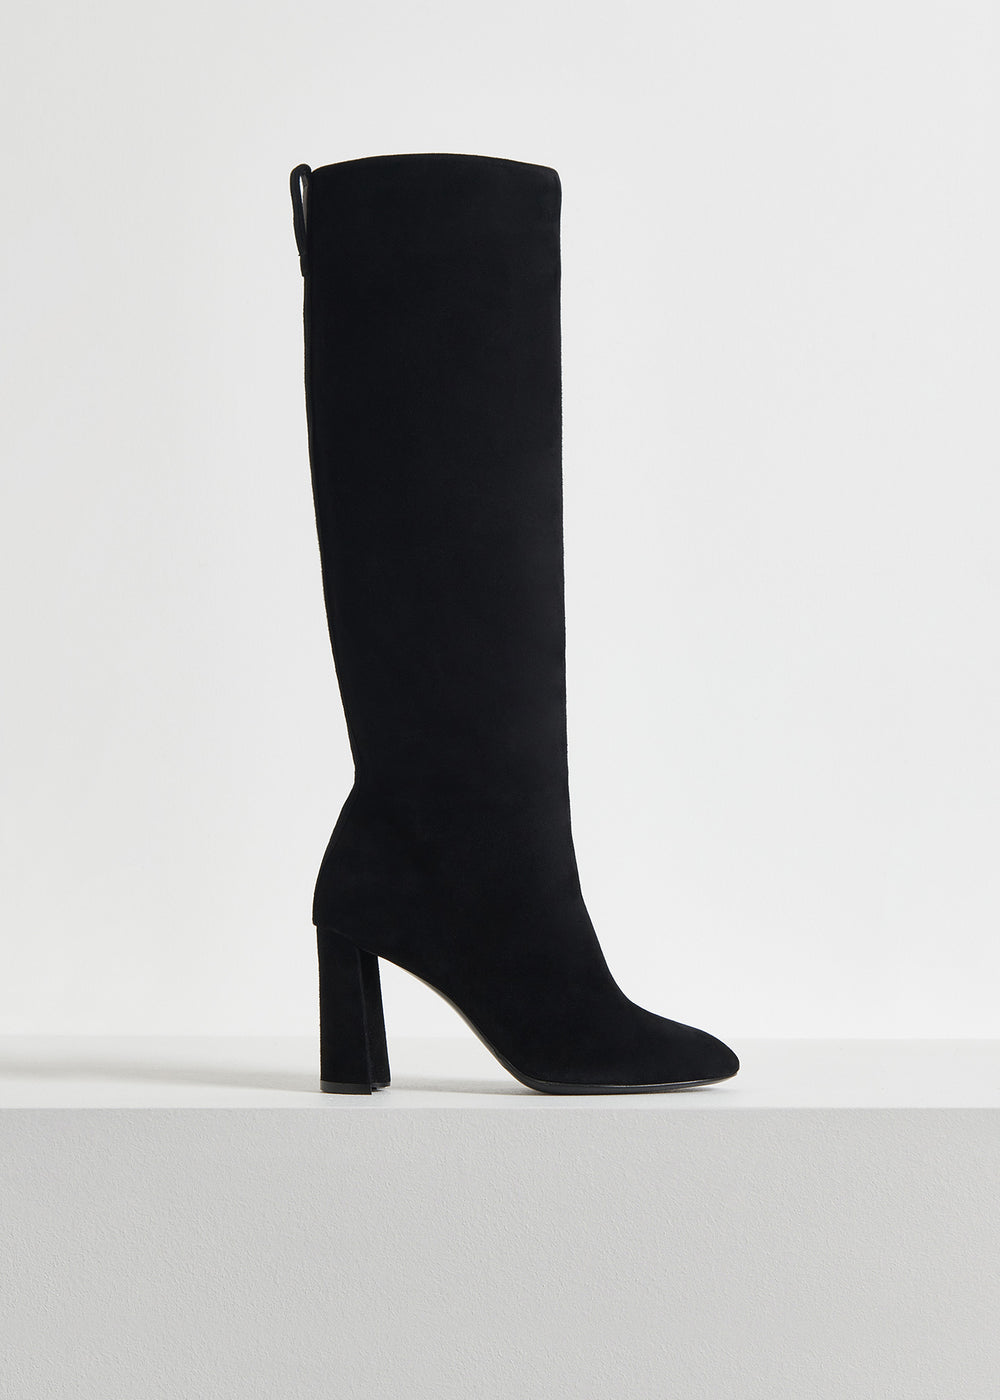 Tall Boot in Suede - Taupe in Black by Co Collections